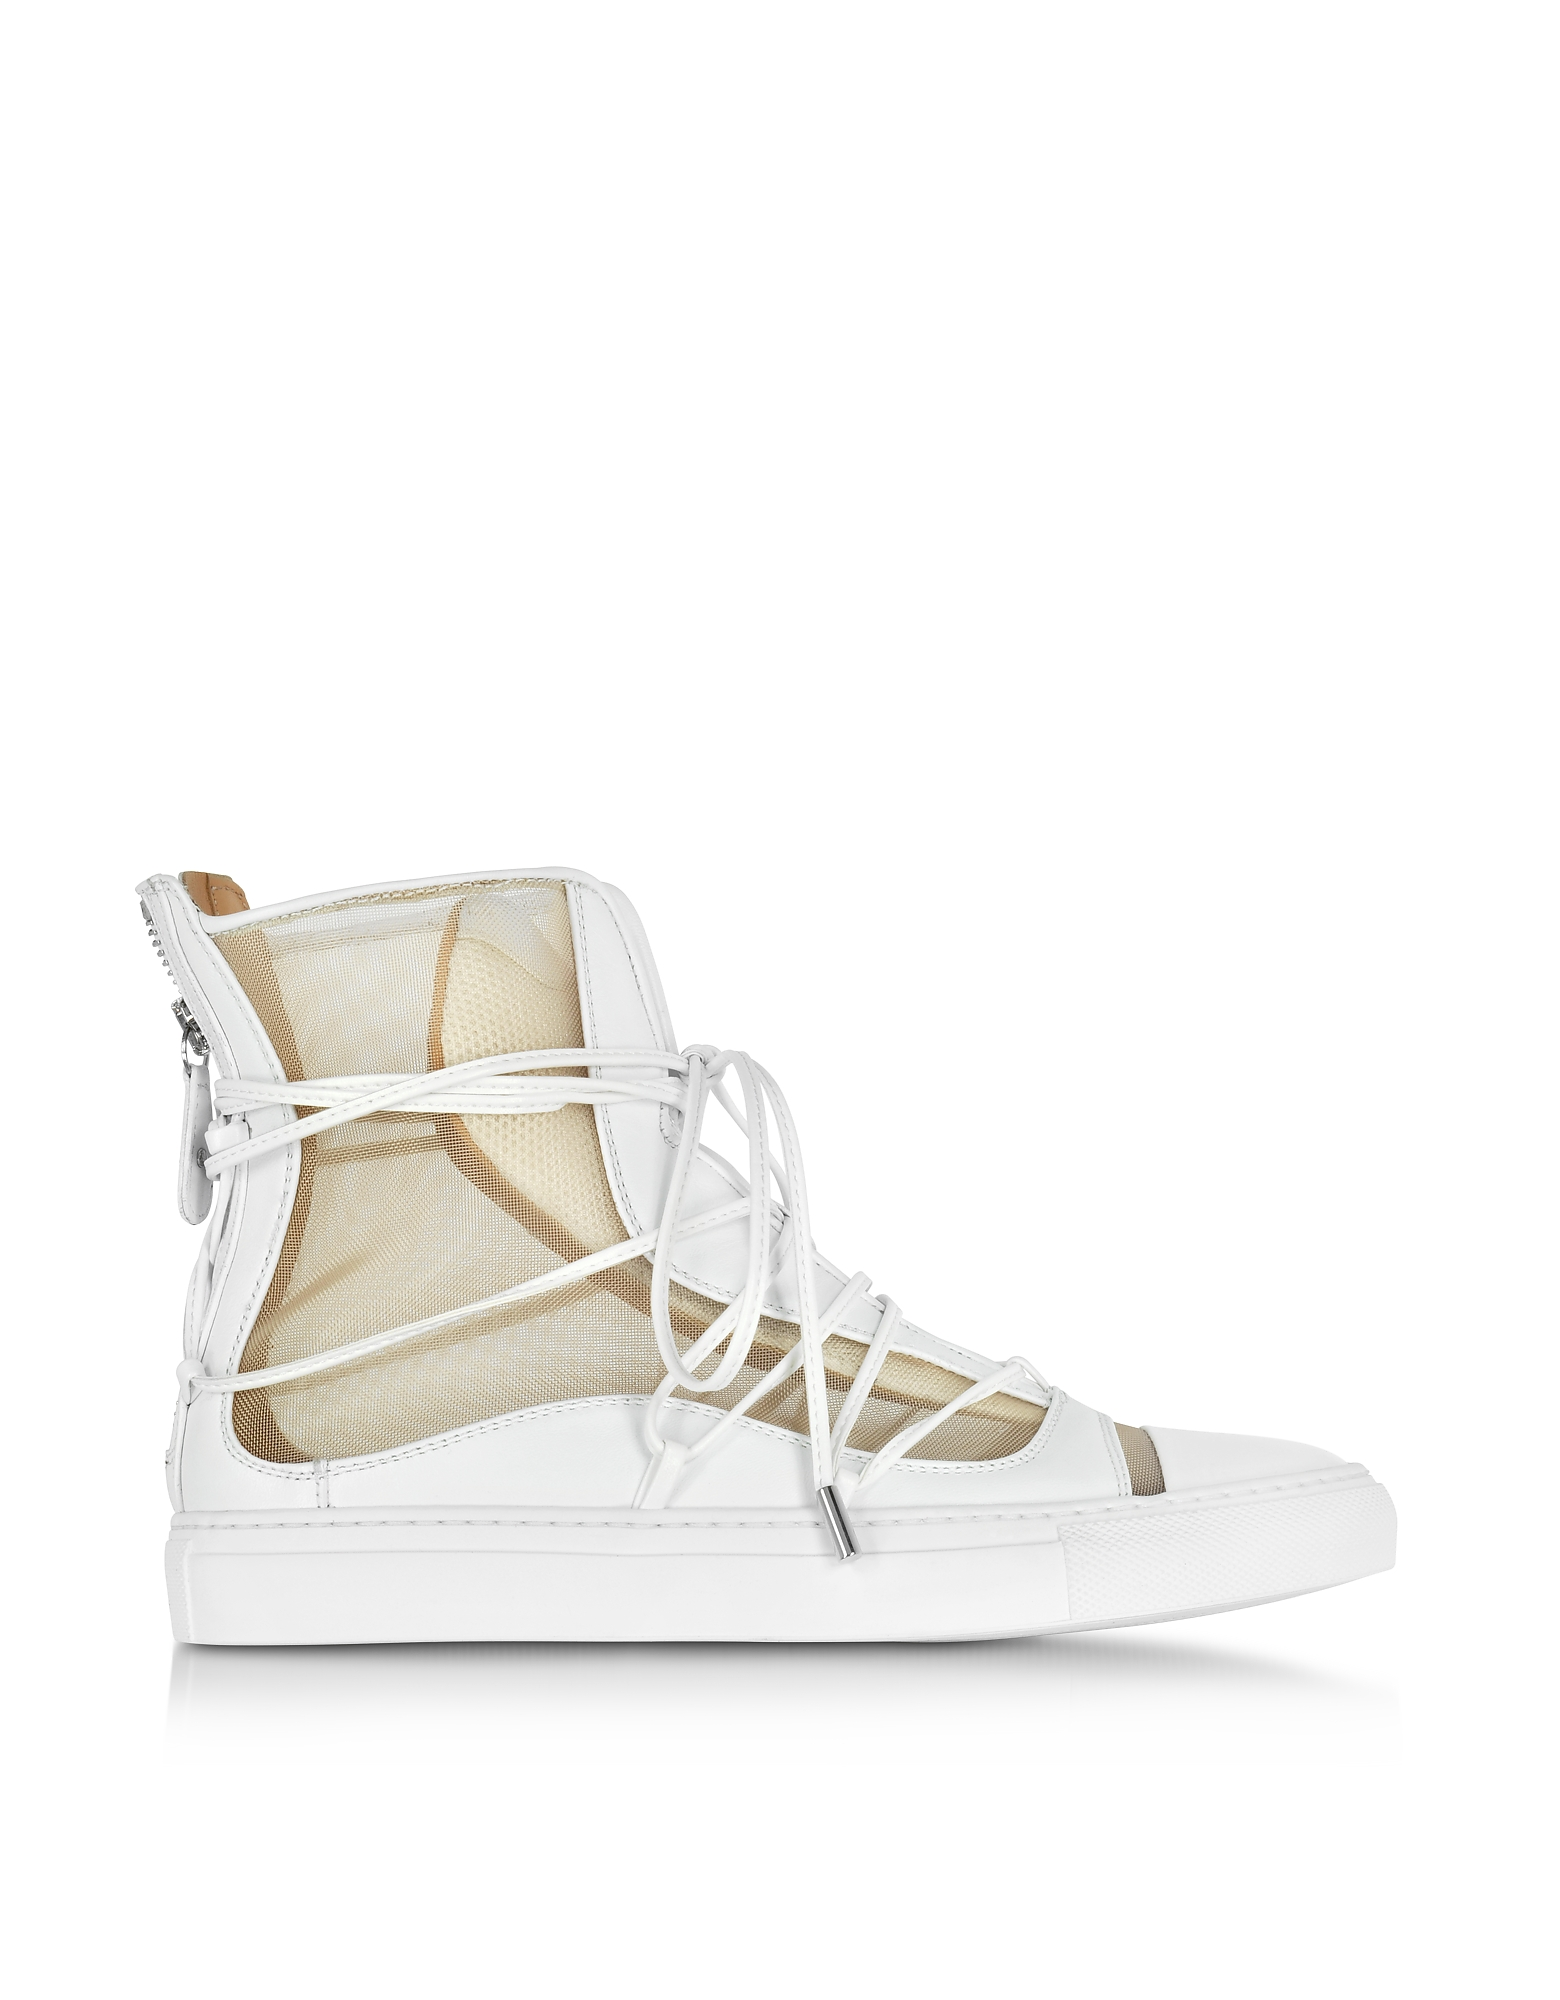 DSquared2 Shoes, Nude Mesh and White Leather High Top Riri Sneakers